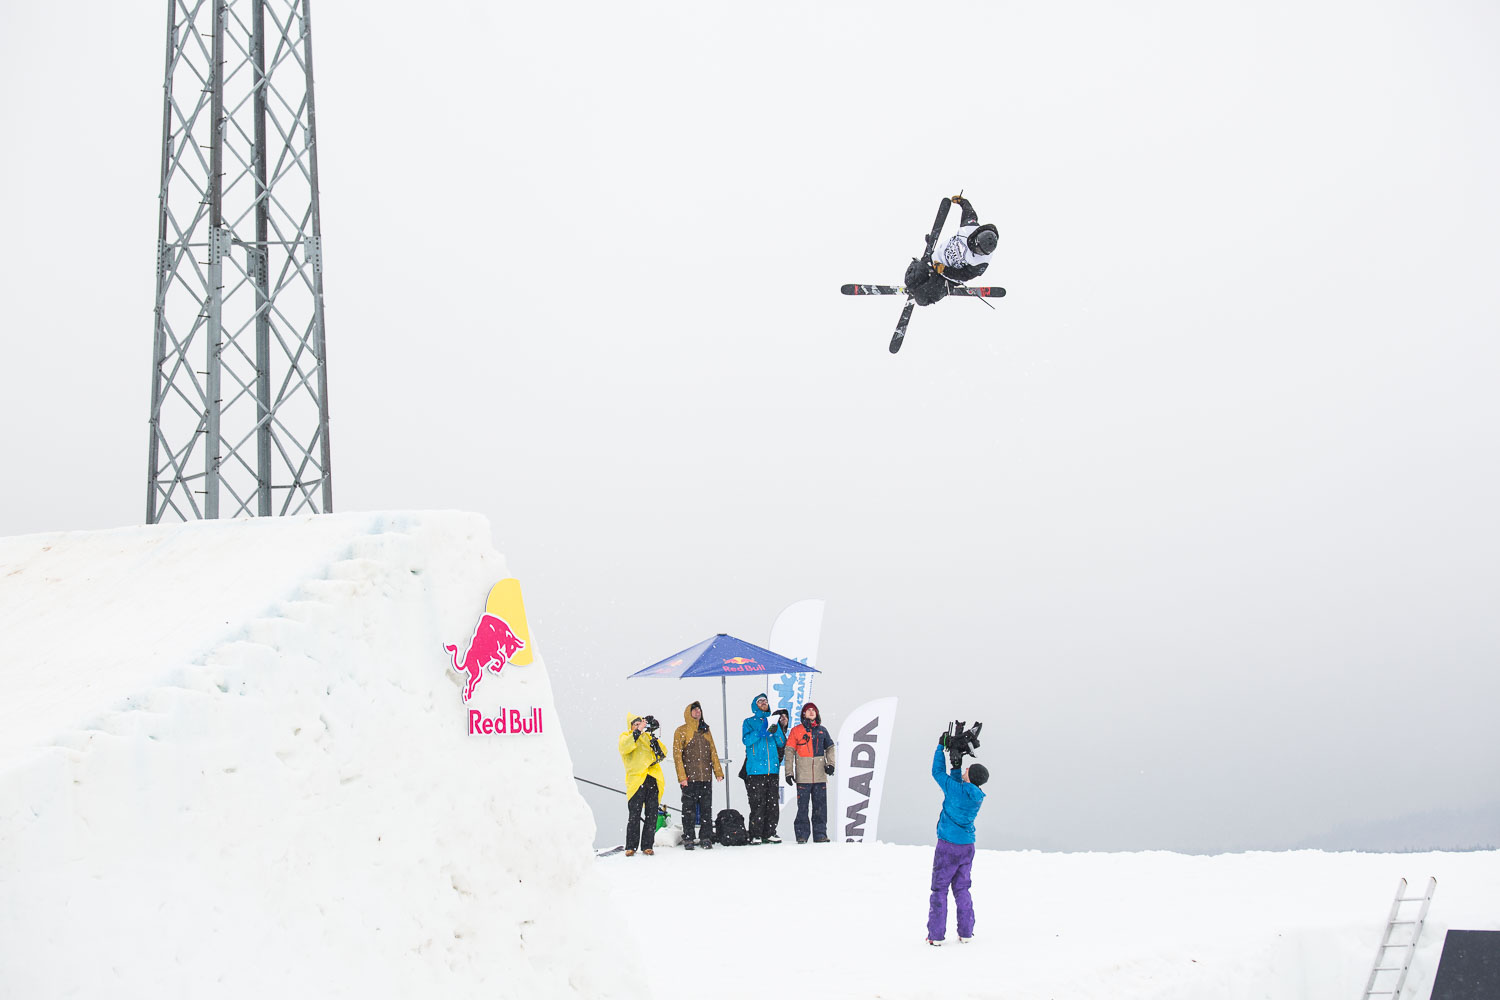 Robert Andre Ruud From Norway Dominates The First Day Of Kotelnica Białczańska WInter Sports Festival